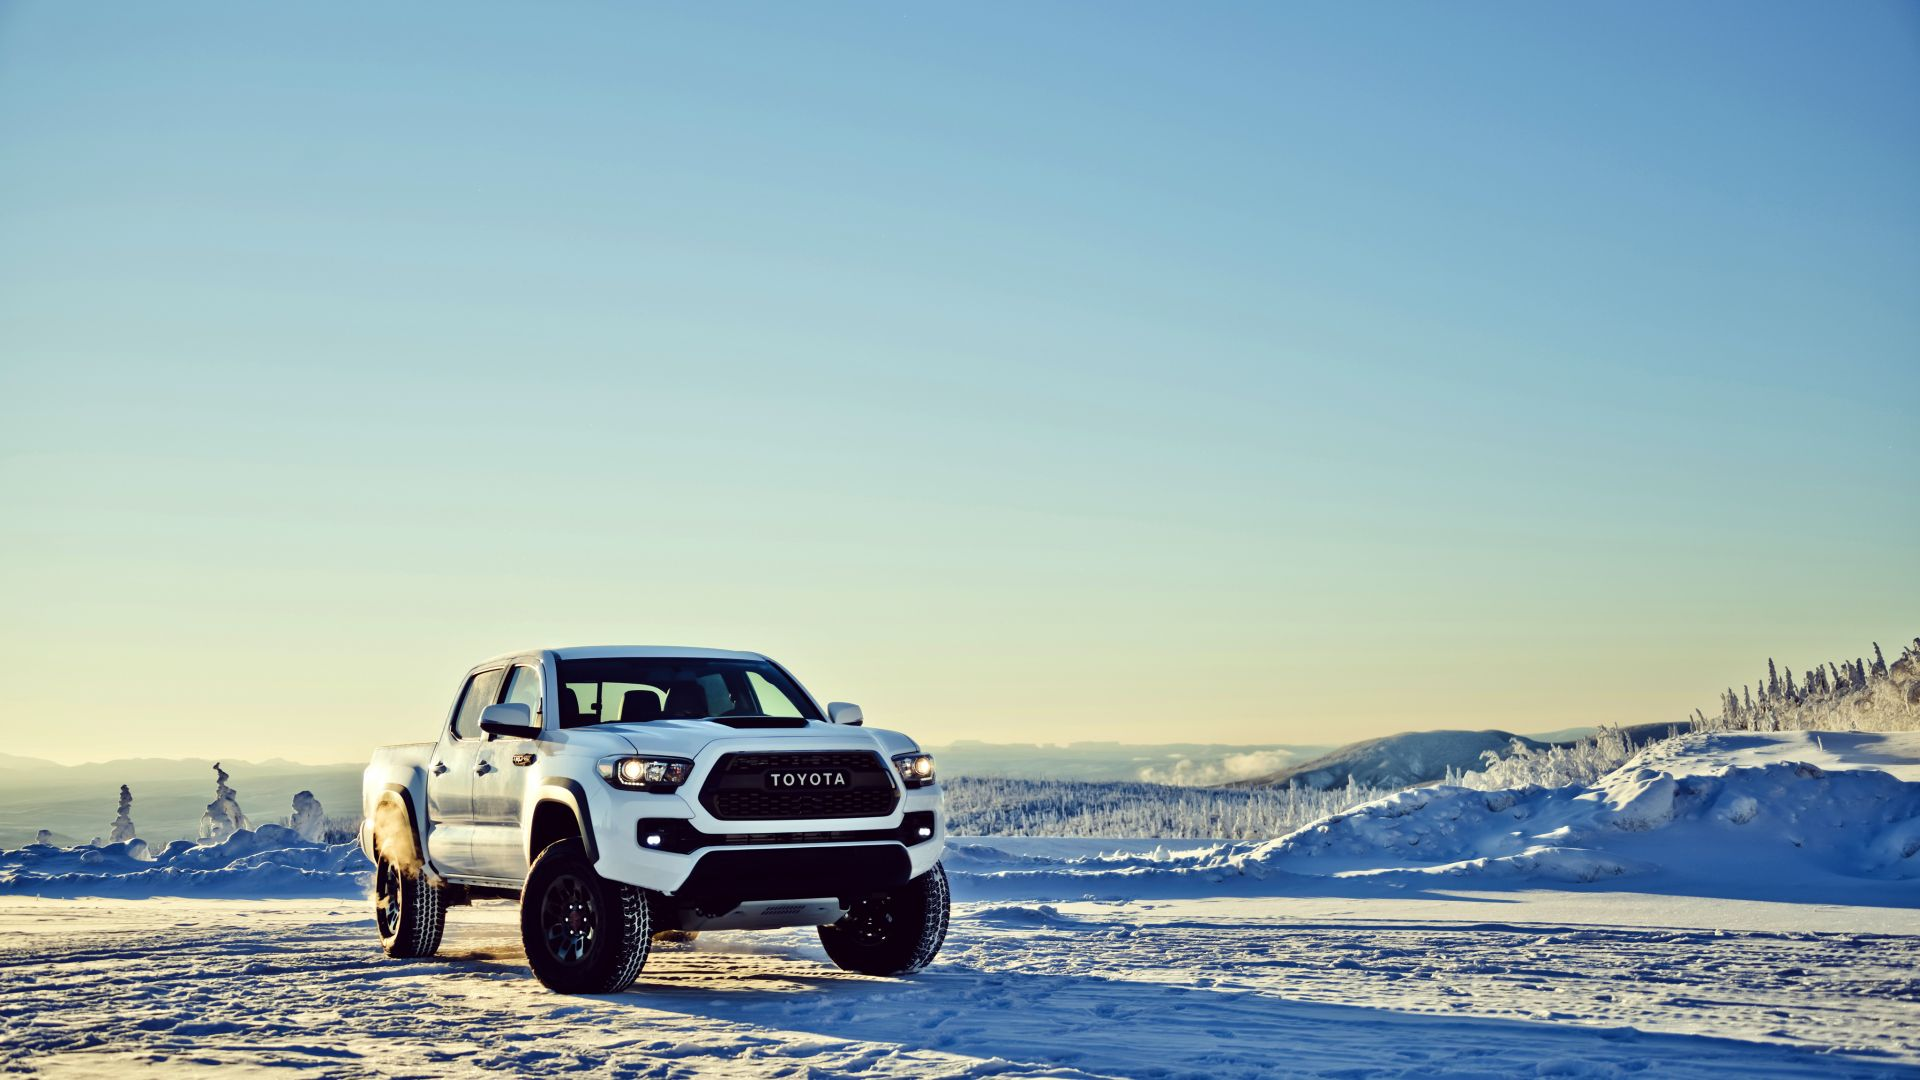 Wallpaper toyota tacoma trd chicago auto show 2016 off road ctrl toyota tacoma trd chicago auto show 2016 off road white horizontal voltagebd Choice Image